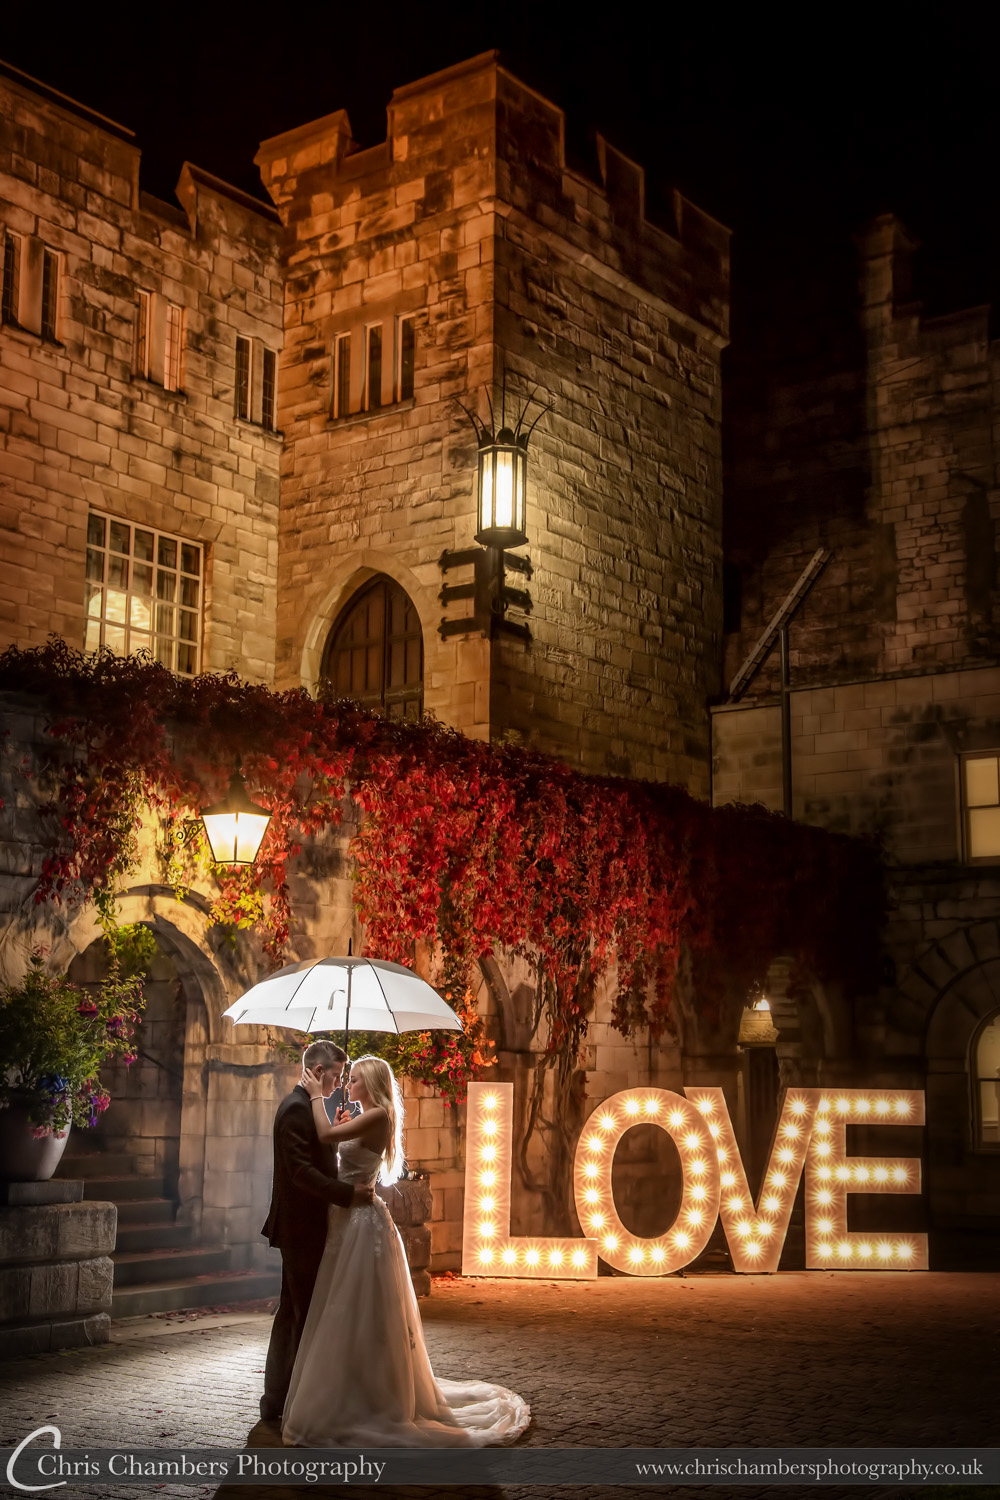 Large L O V E letters at a wedding. Wedding photography Hazlewood Castle.